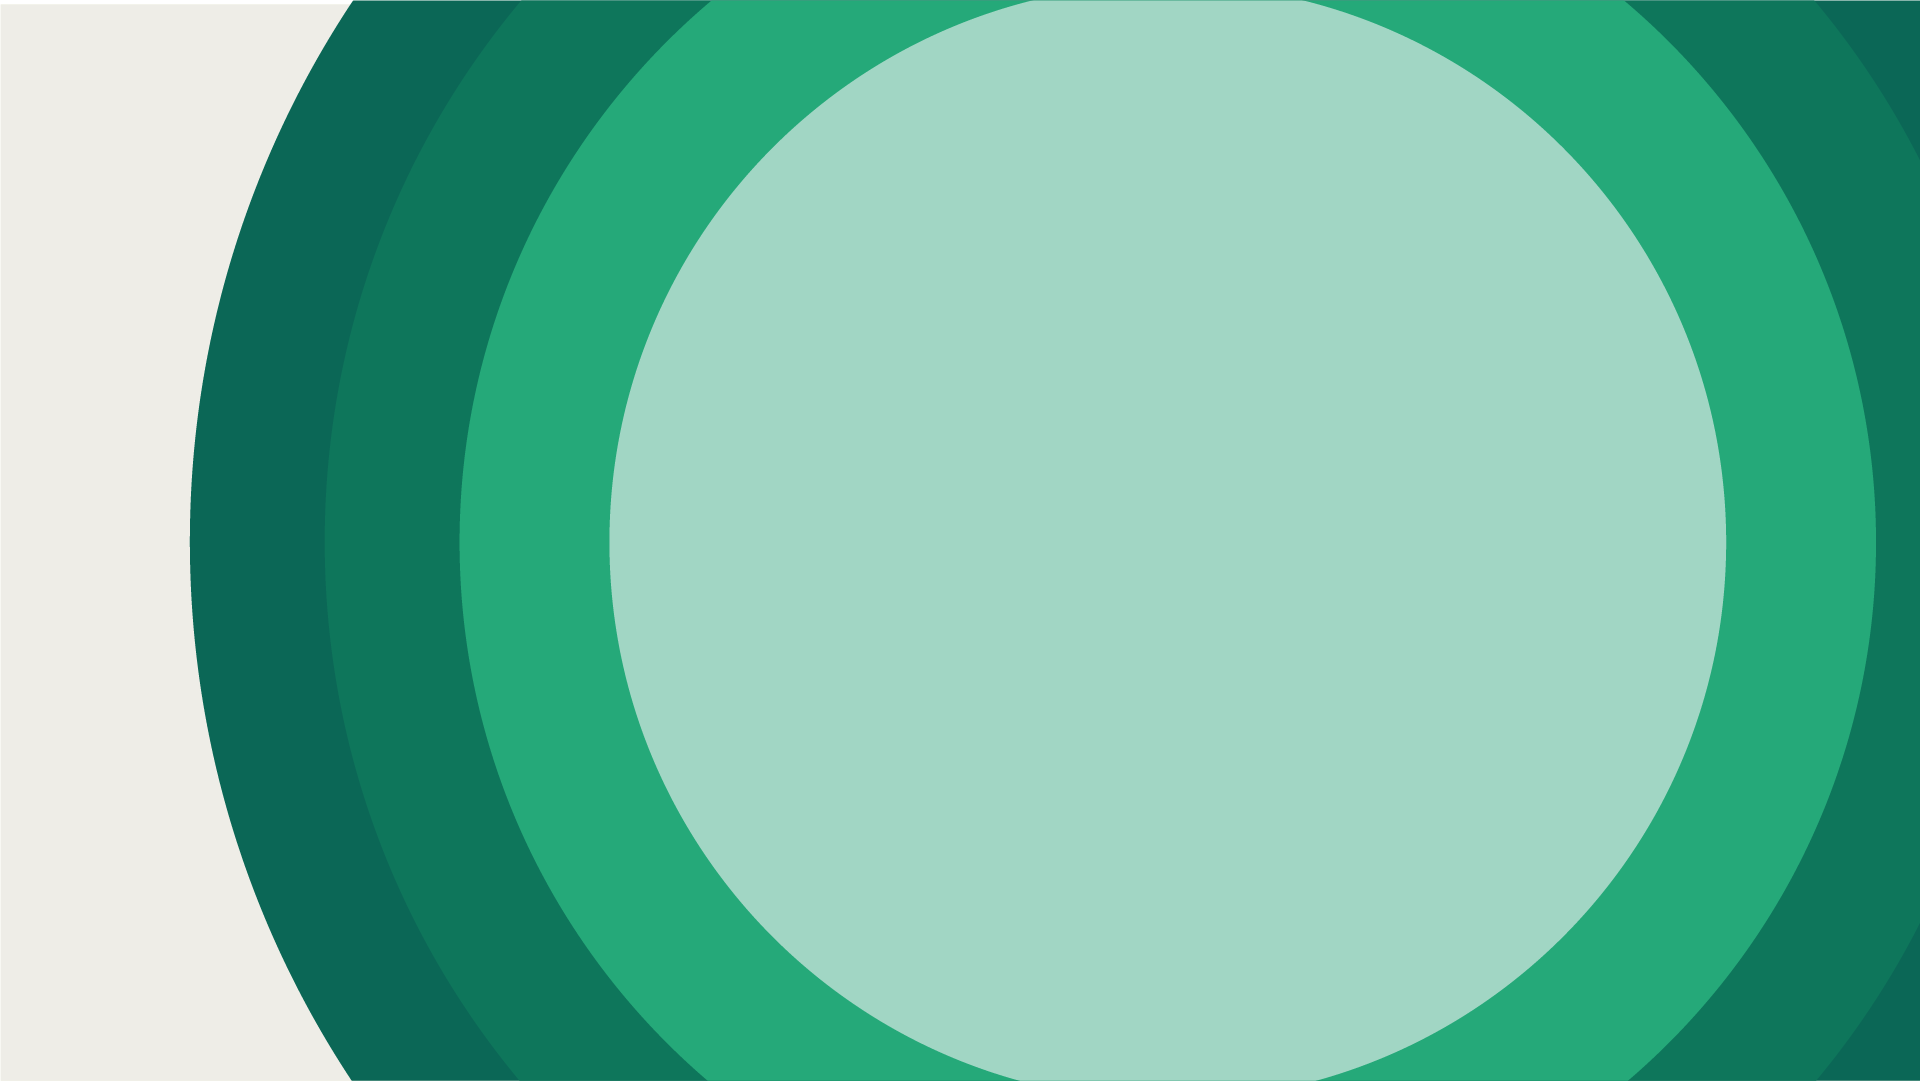 Decorative Graphic with concentric green circles